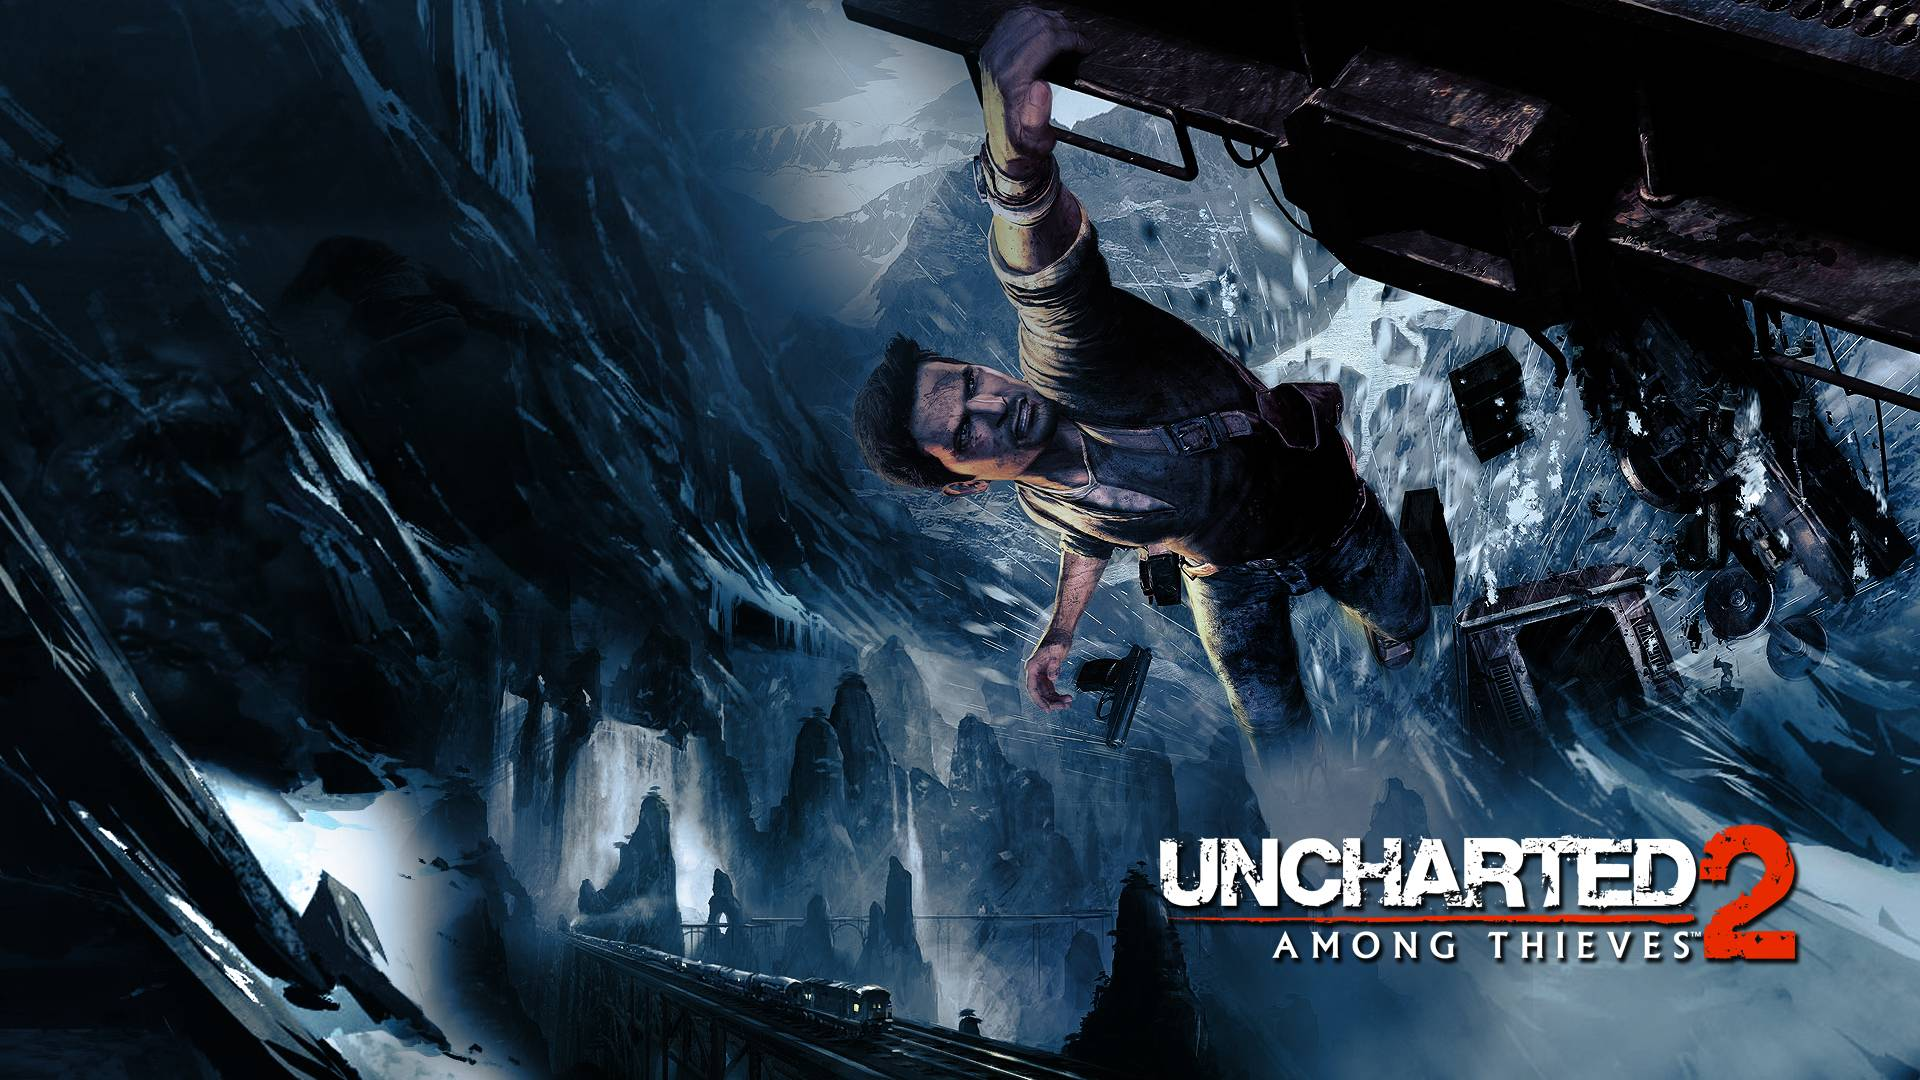 Uncharted 2 among thieves wallpapers wallpaper cave - Uncharted wallpaper ...